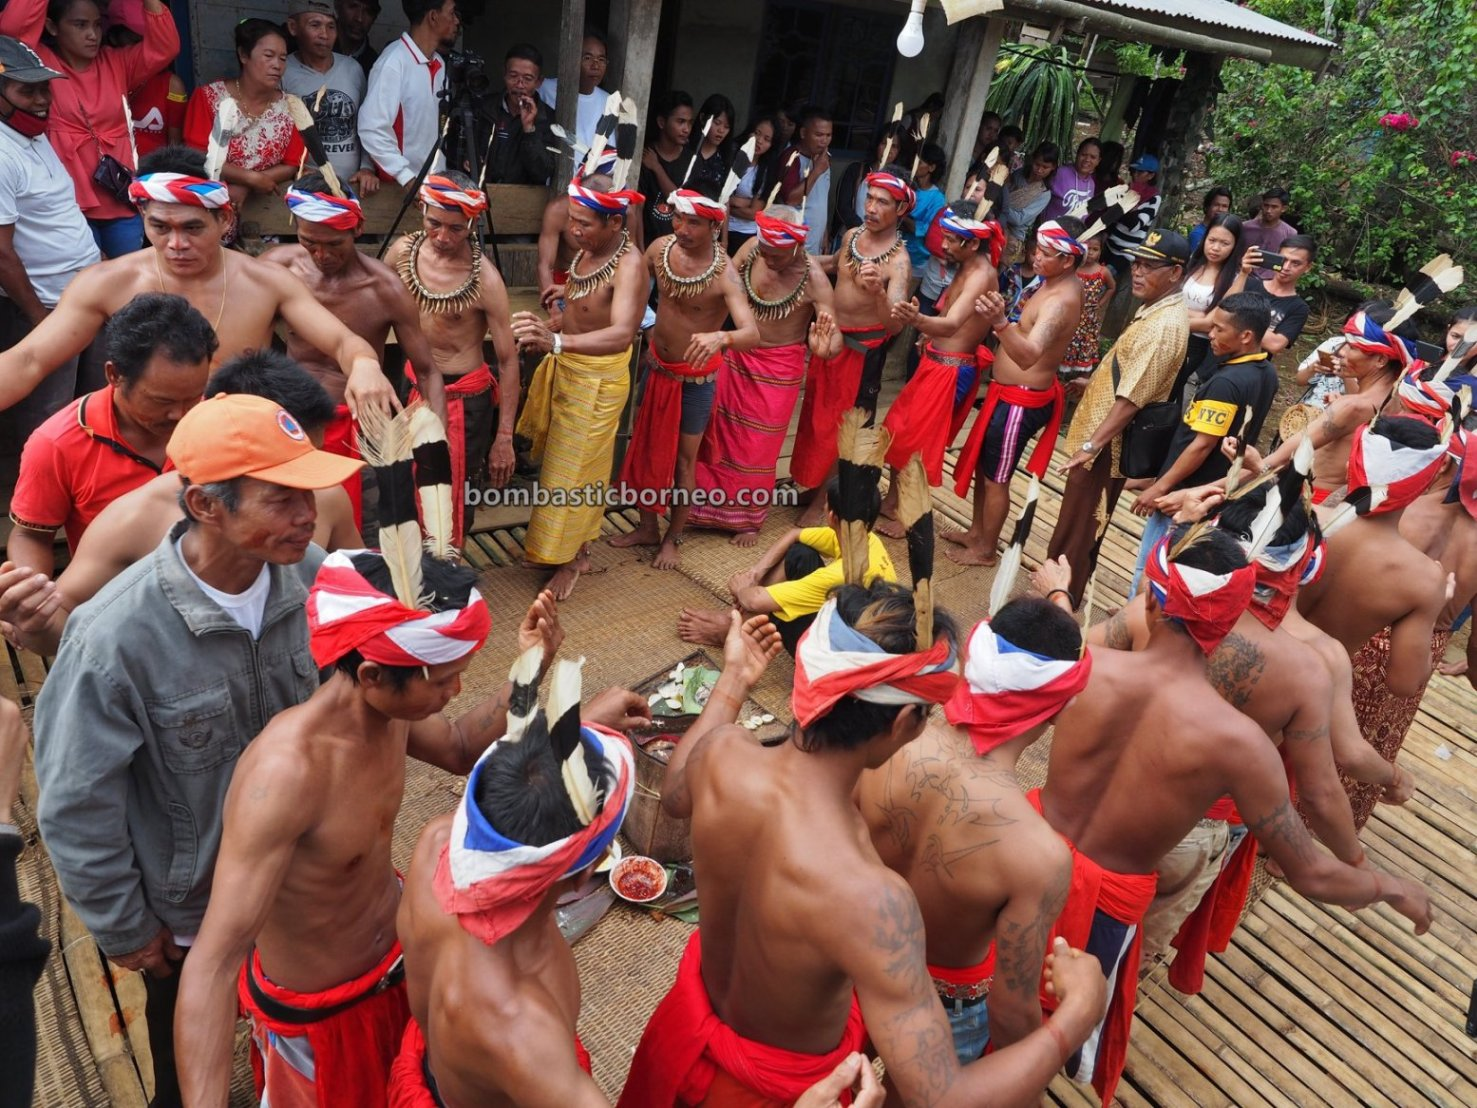 Nyobeng Rambai, thanksgiving, traditional, culture, destination, Indonesia, Kalimantan Barat, Bengkayang, Seluas, native, tribal, Tourism, tourist attraction, travel guide, Borneo